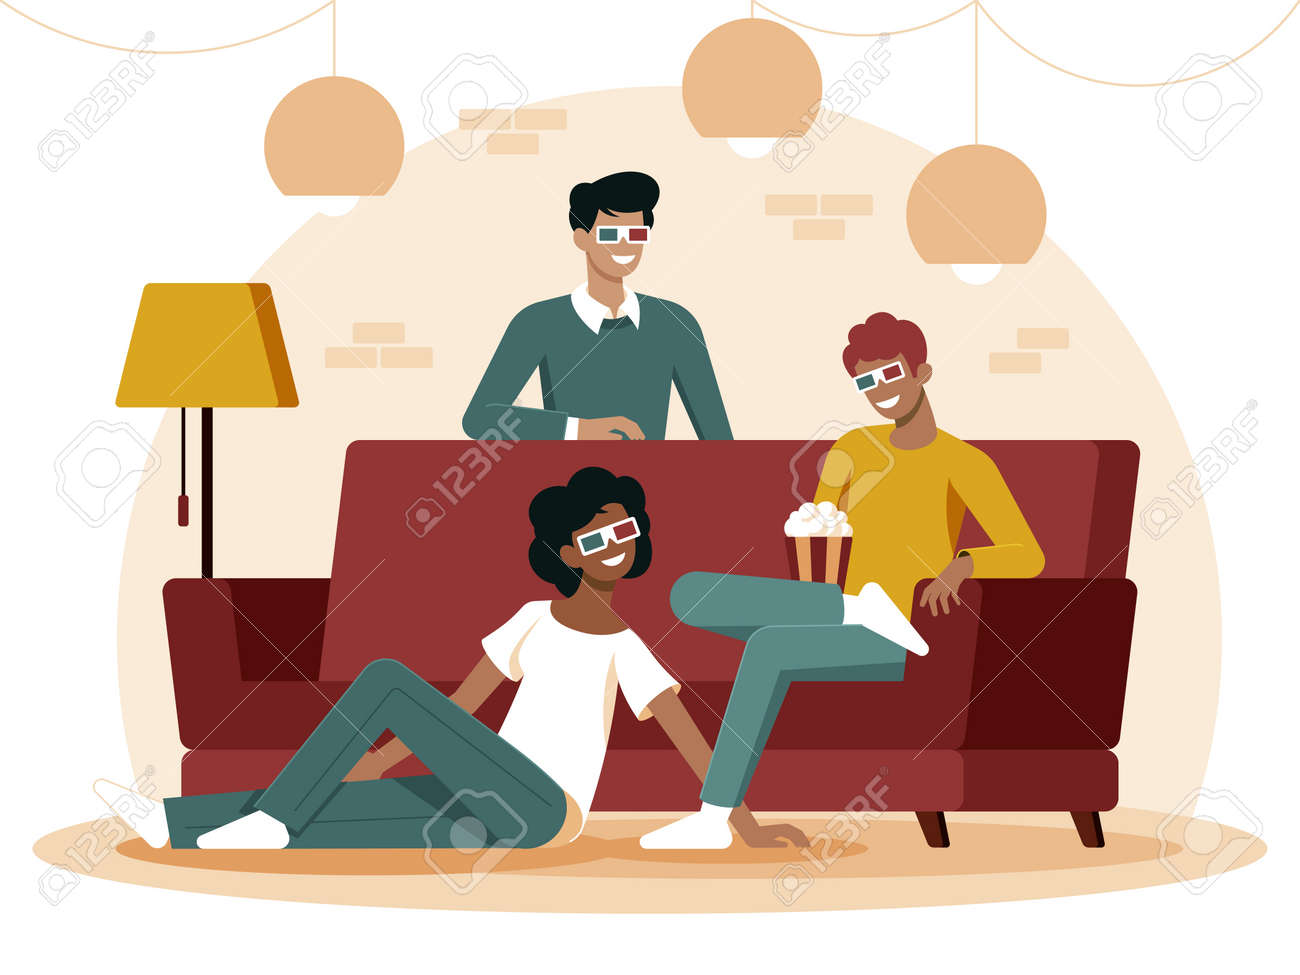 Colourful flat illustration of best friends sitting on the couch eating popcorn - 165451363